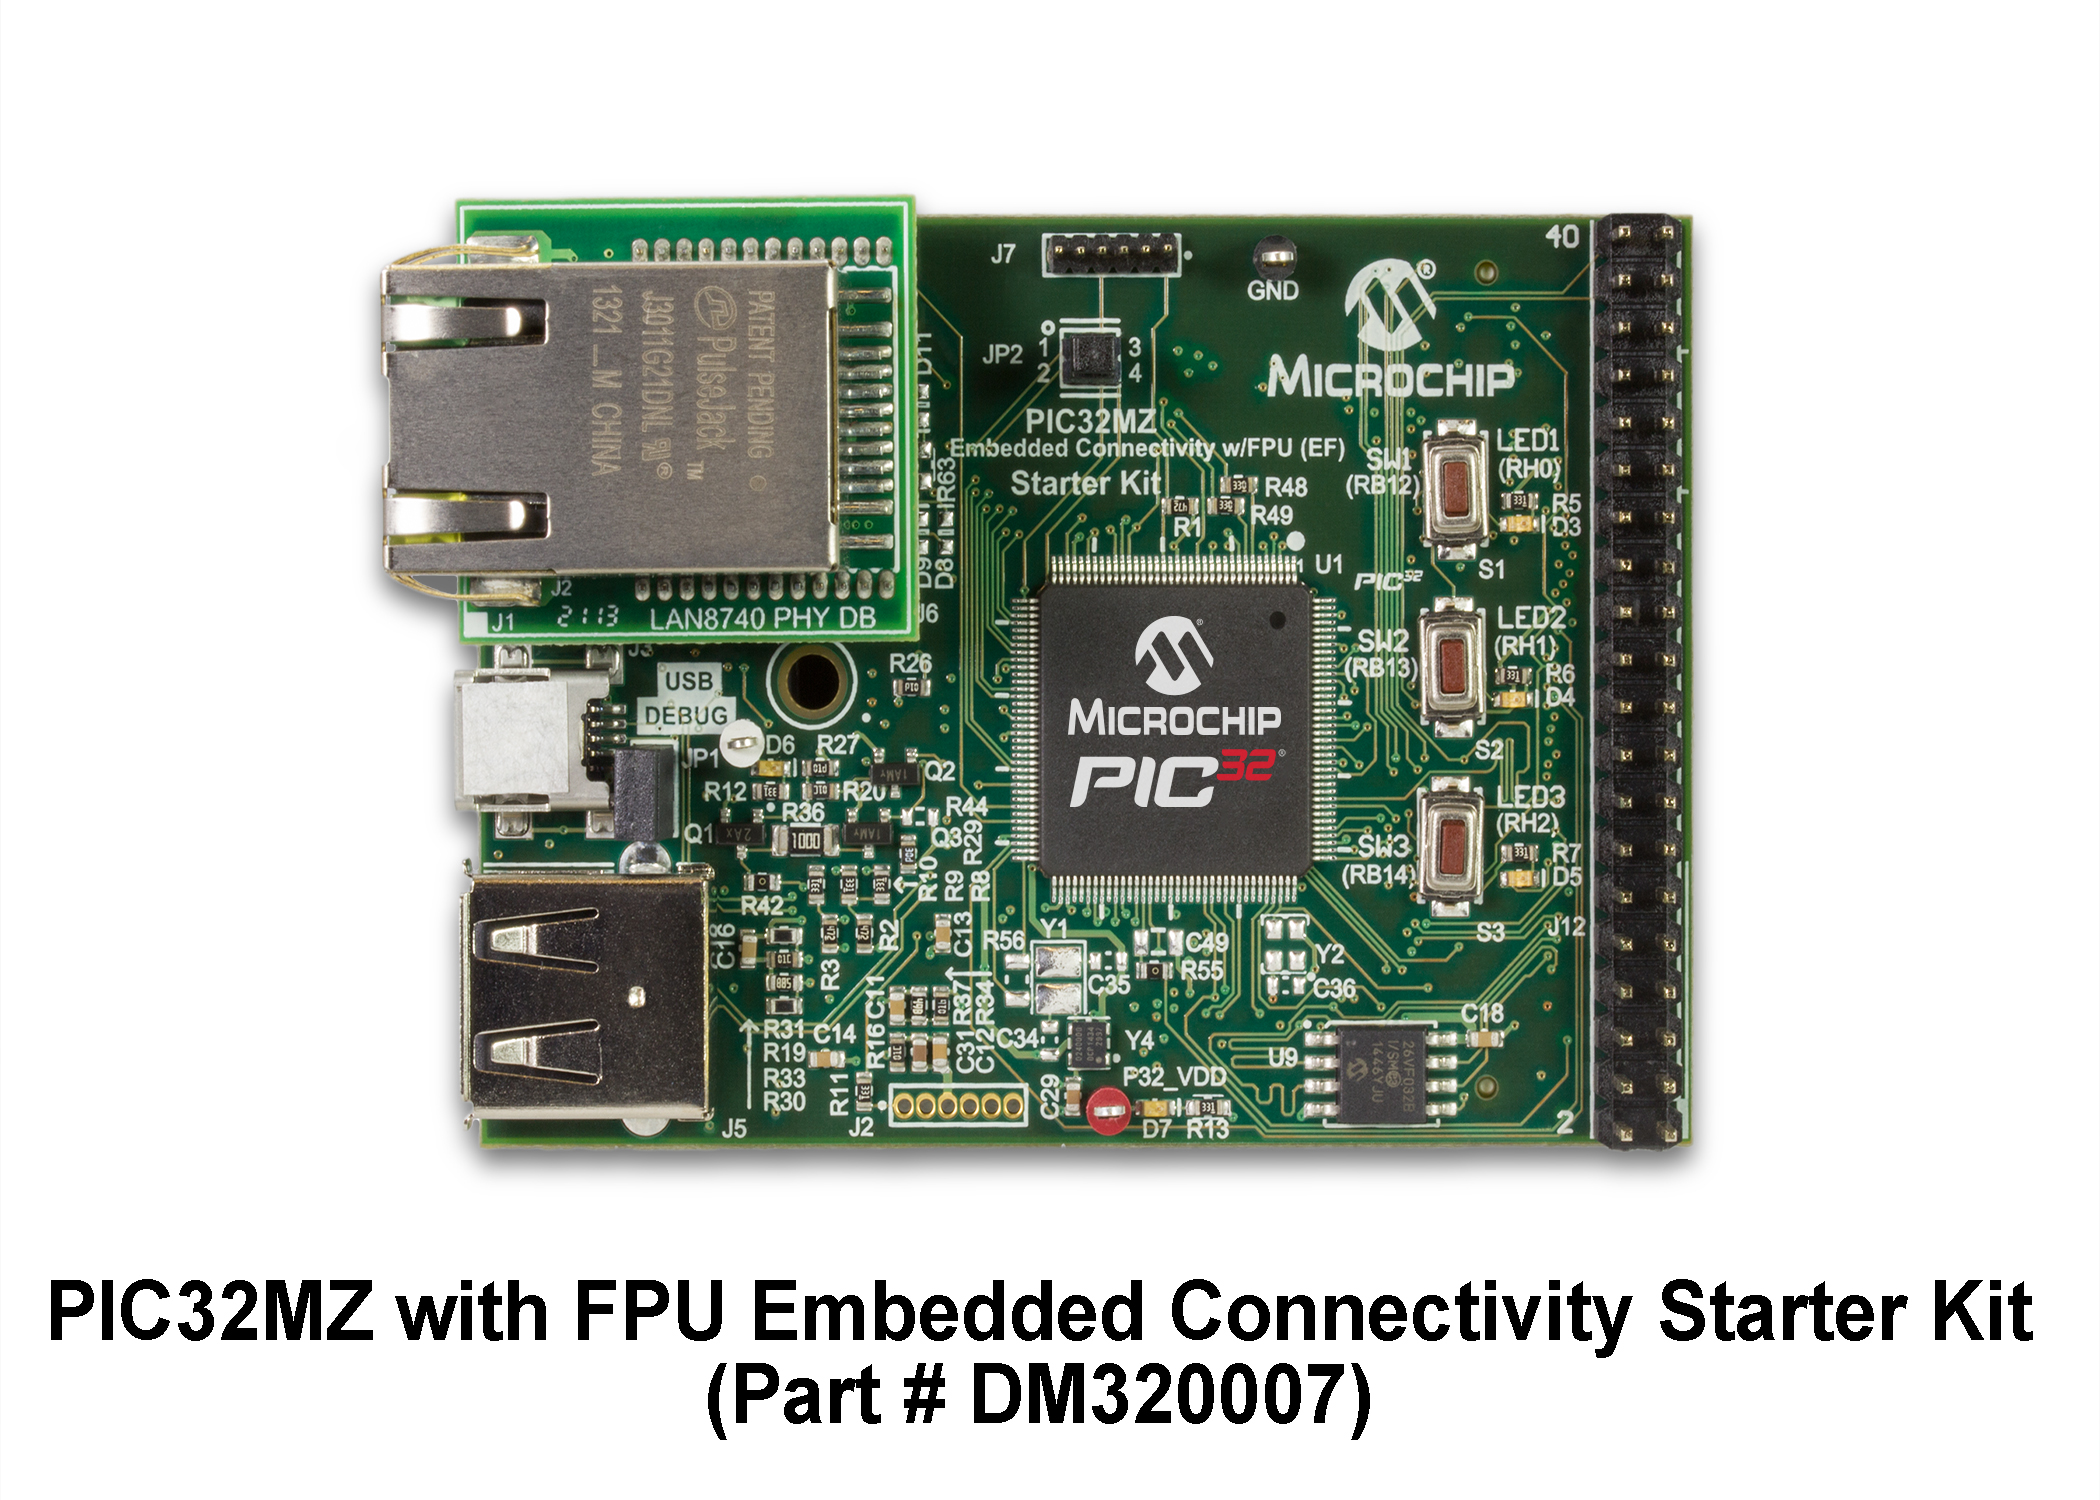 PIC32MZ Embedded Connectivity with FPU (EF) Starter Kit DM320007